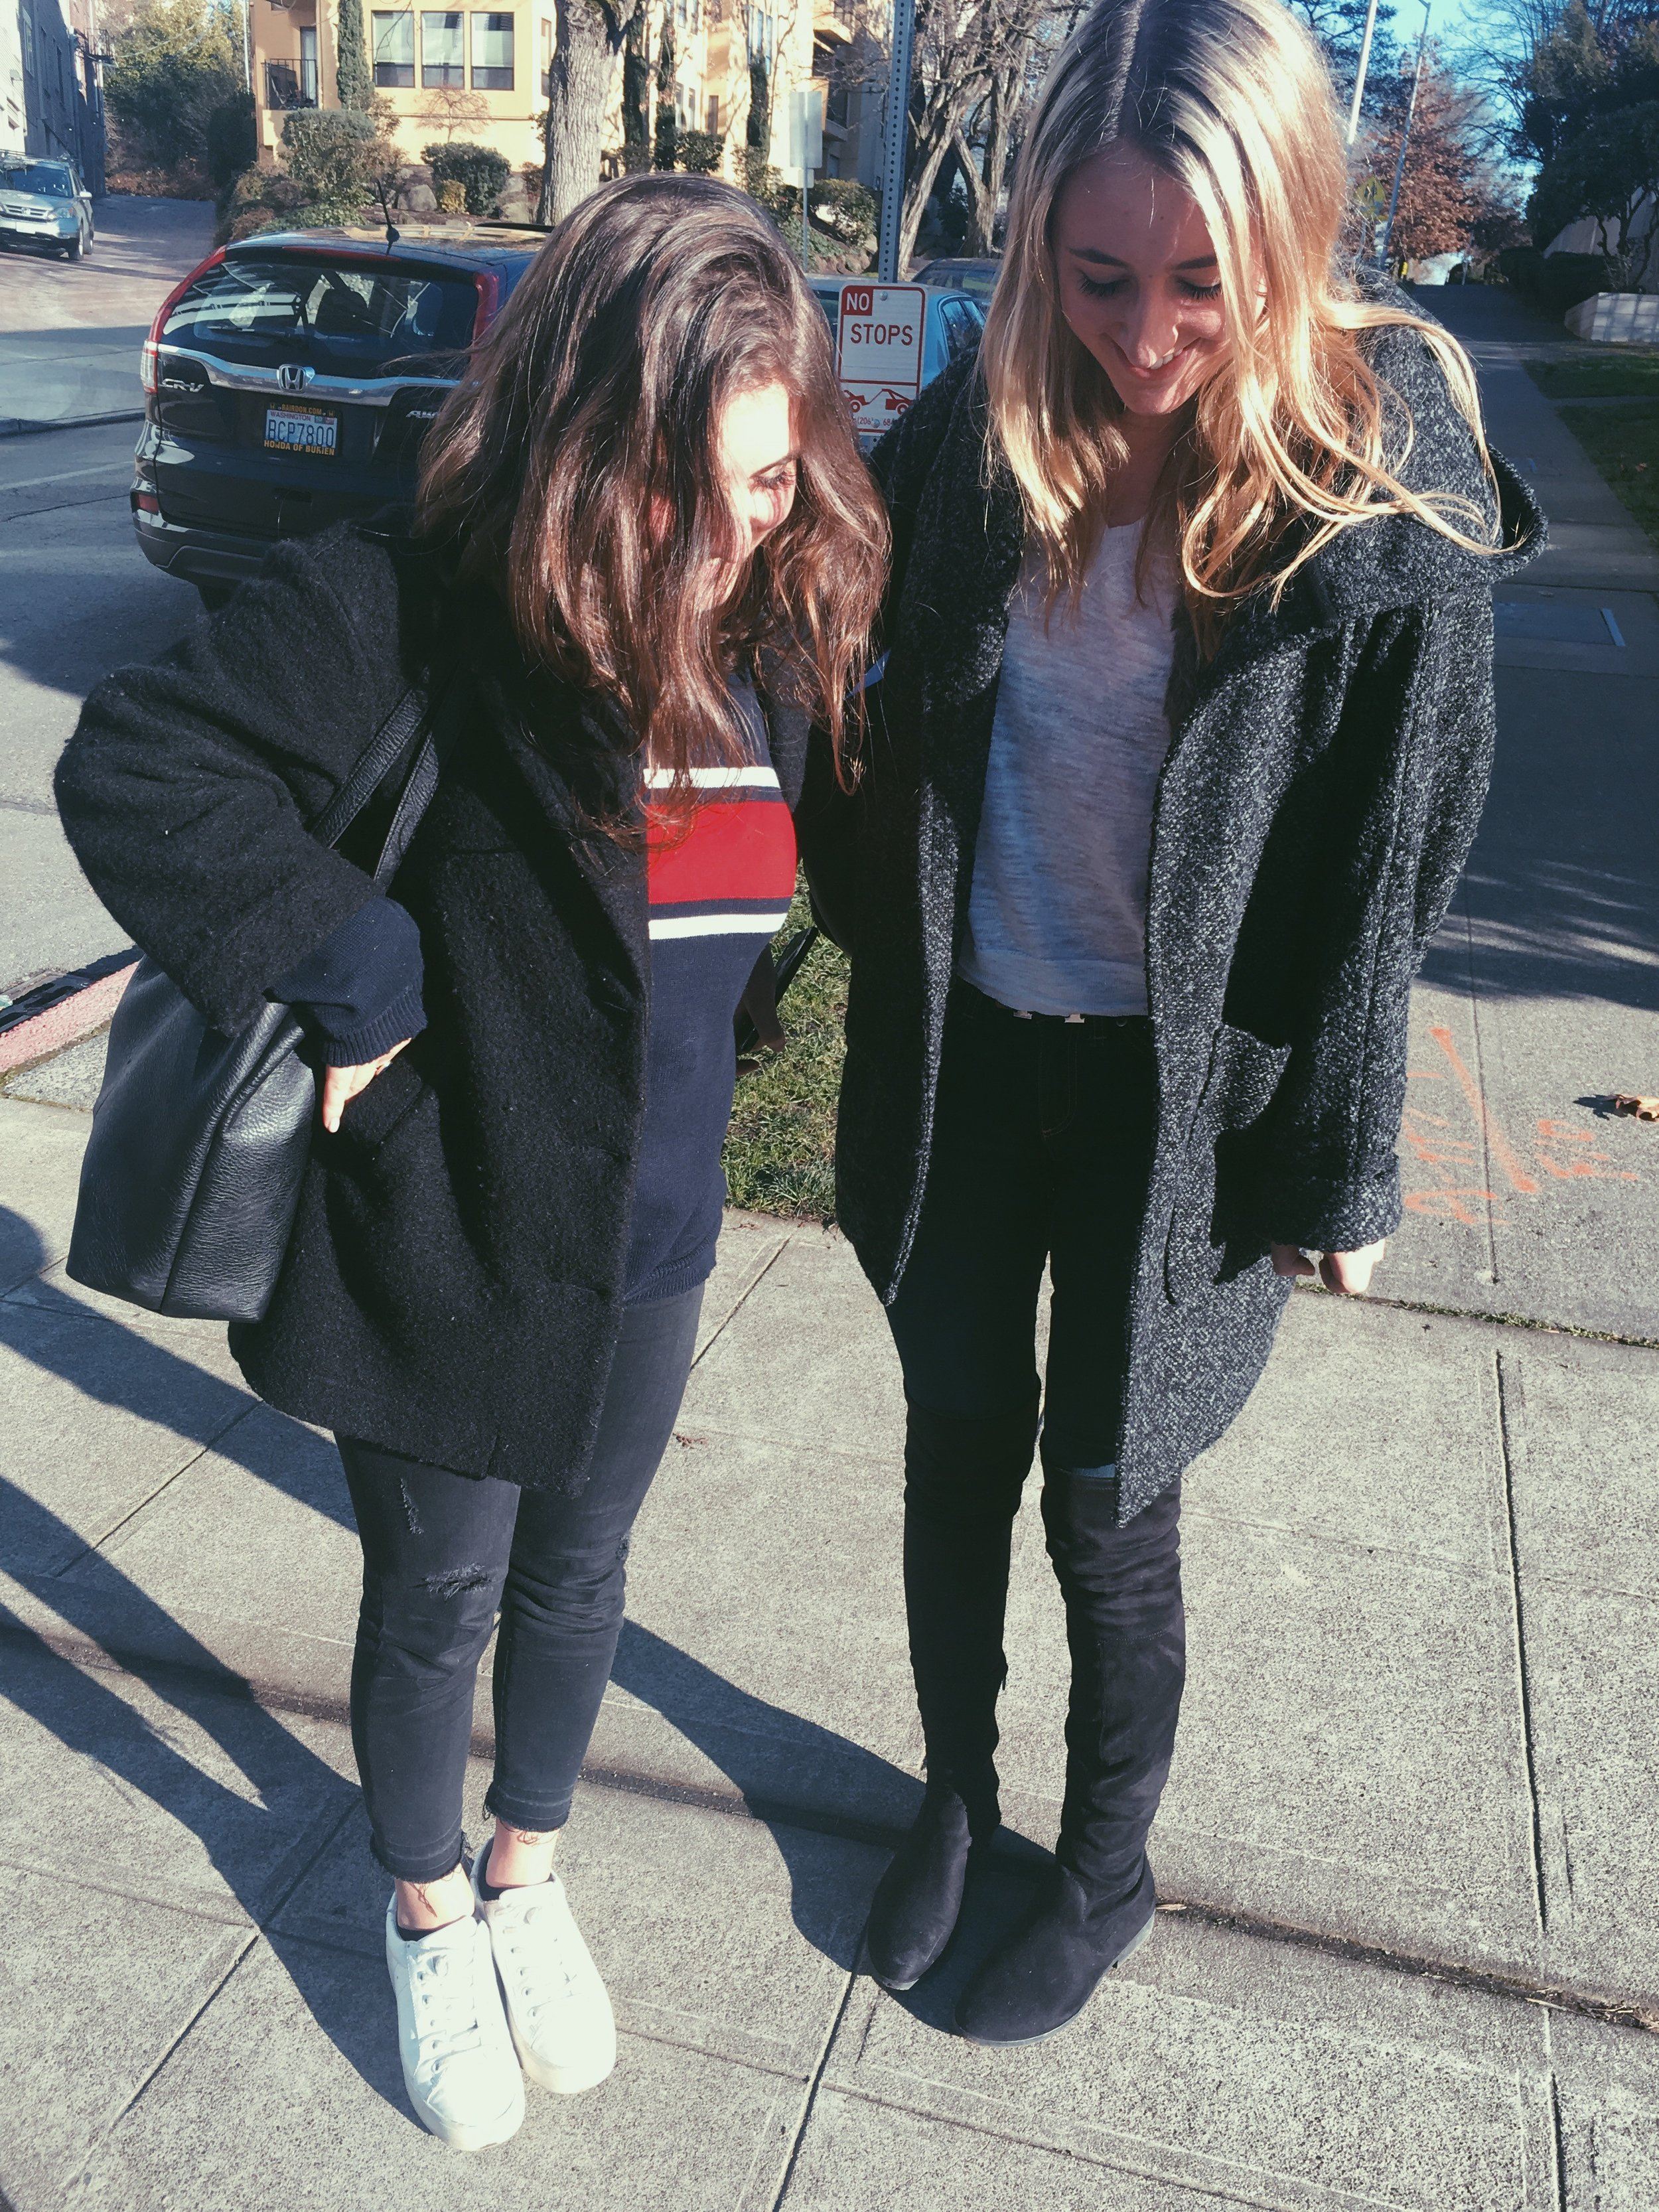 Ruby '17 and Camille '17:  This duo proves that layering is key. Ruby goes with a sporty approach in an American Apparel coat, Brandy Melville sweater, Zara jeans and Steve Madden sneakers. Camille chooses an Urban Outfitters coat, Nasty Gal boots, and Rag & Bone sweater and pants.